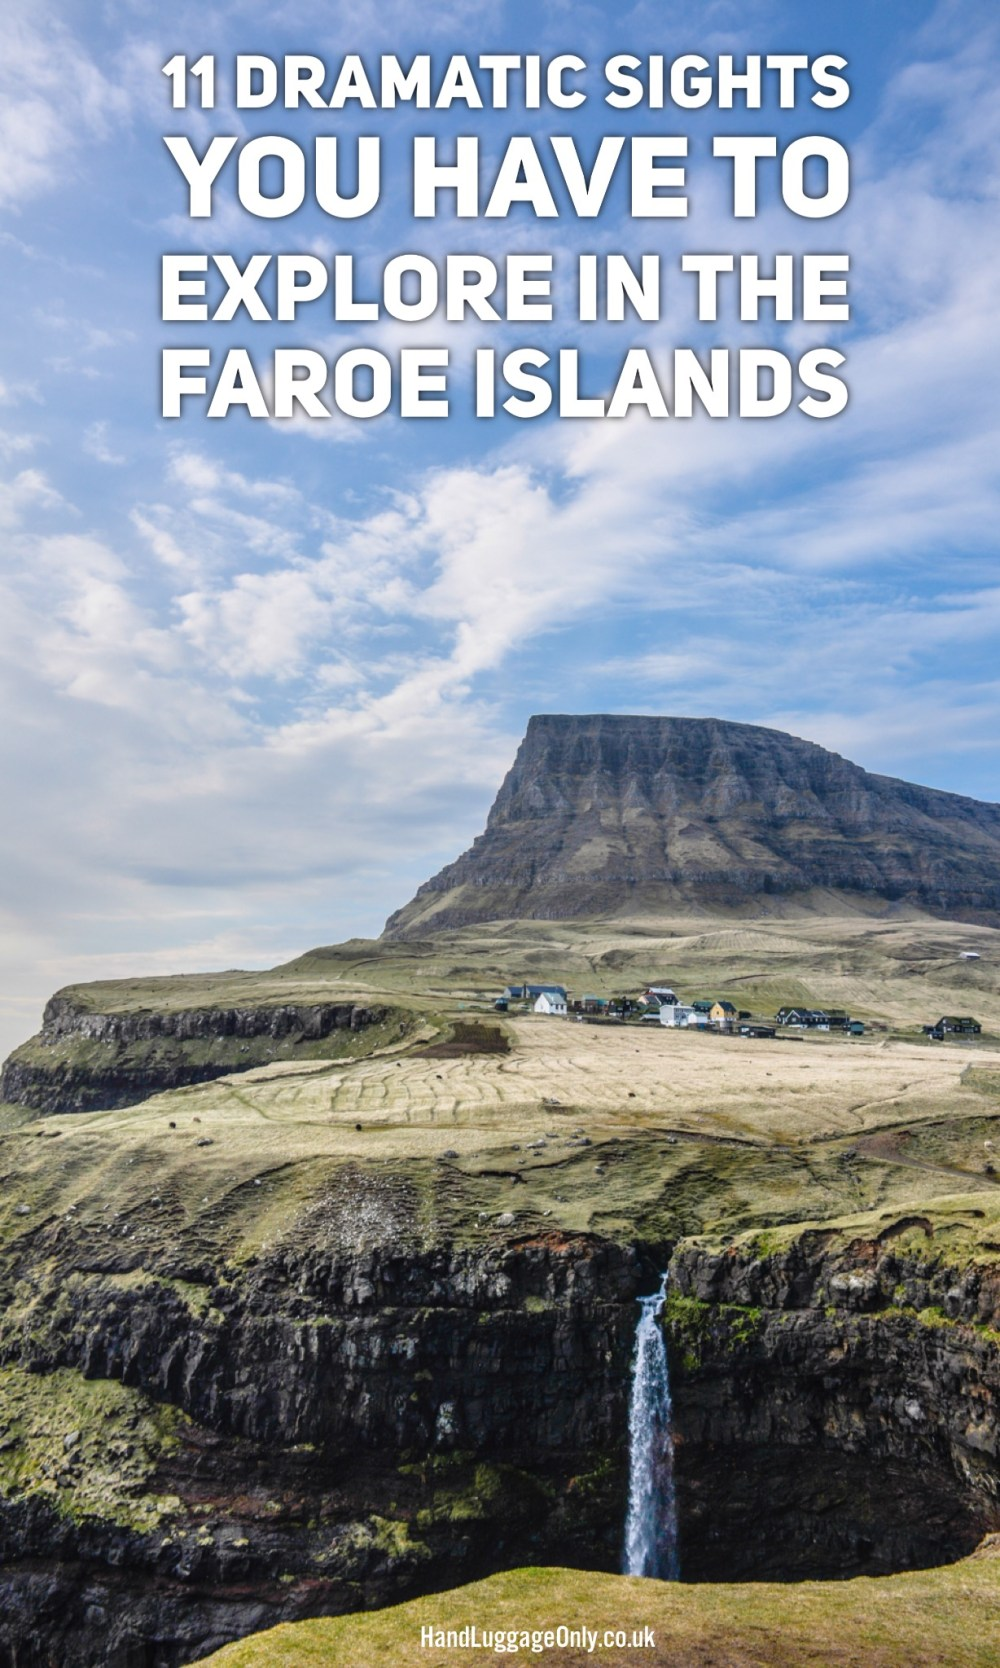 11 Dramatic Sights You Have To Explore In The Faroe Islands (1)